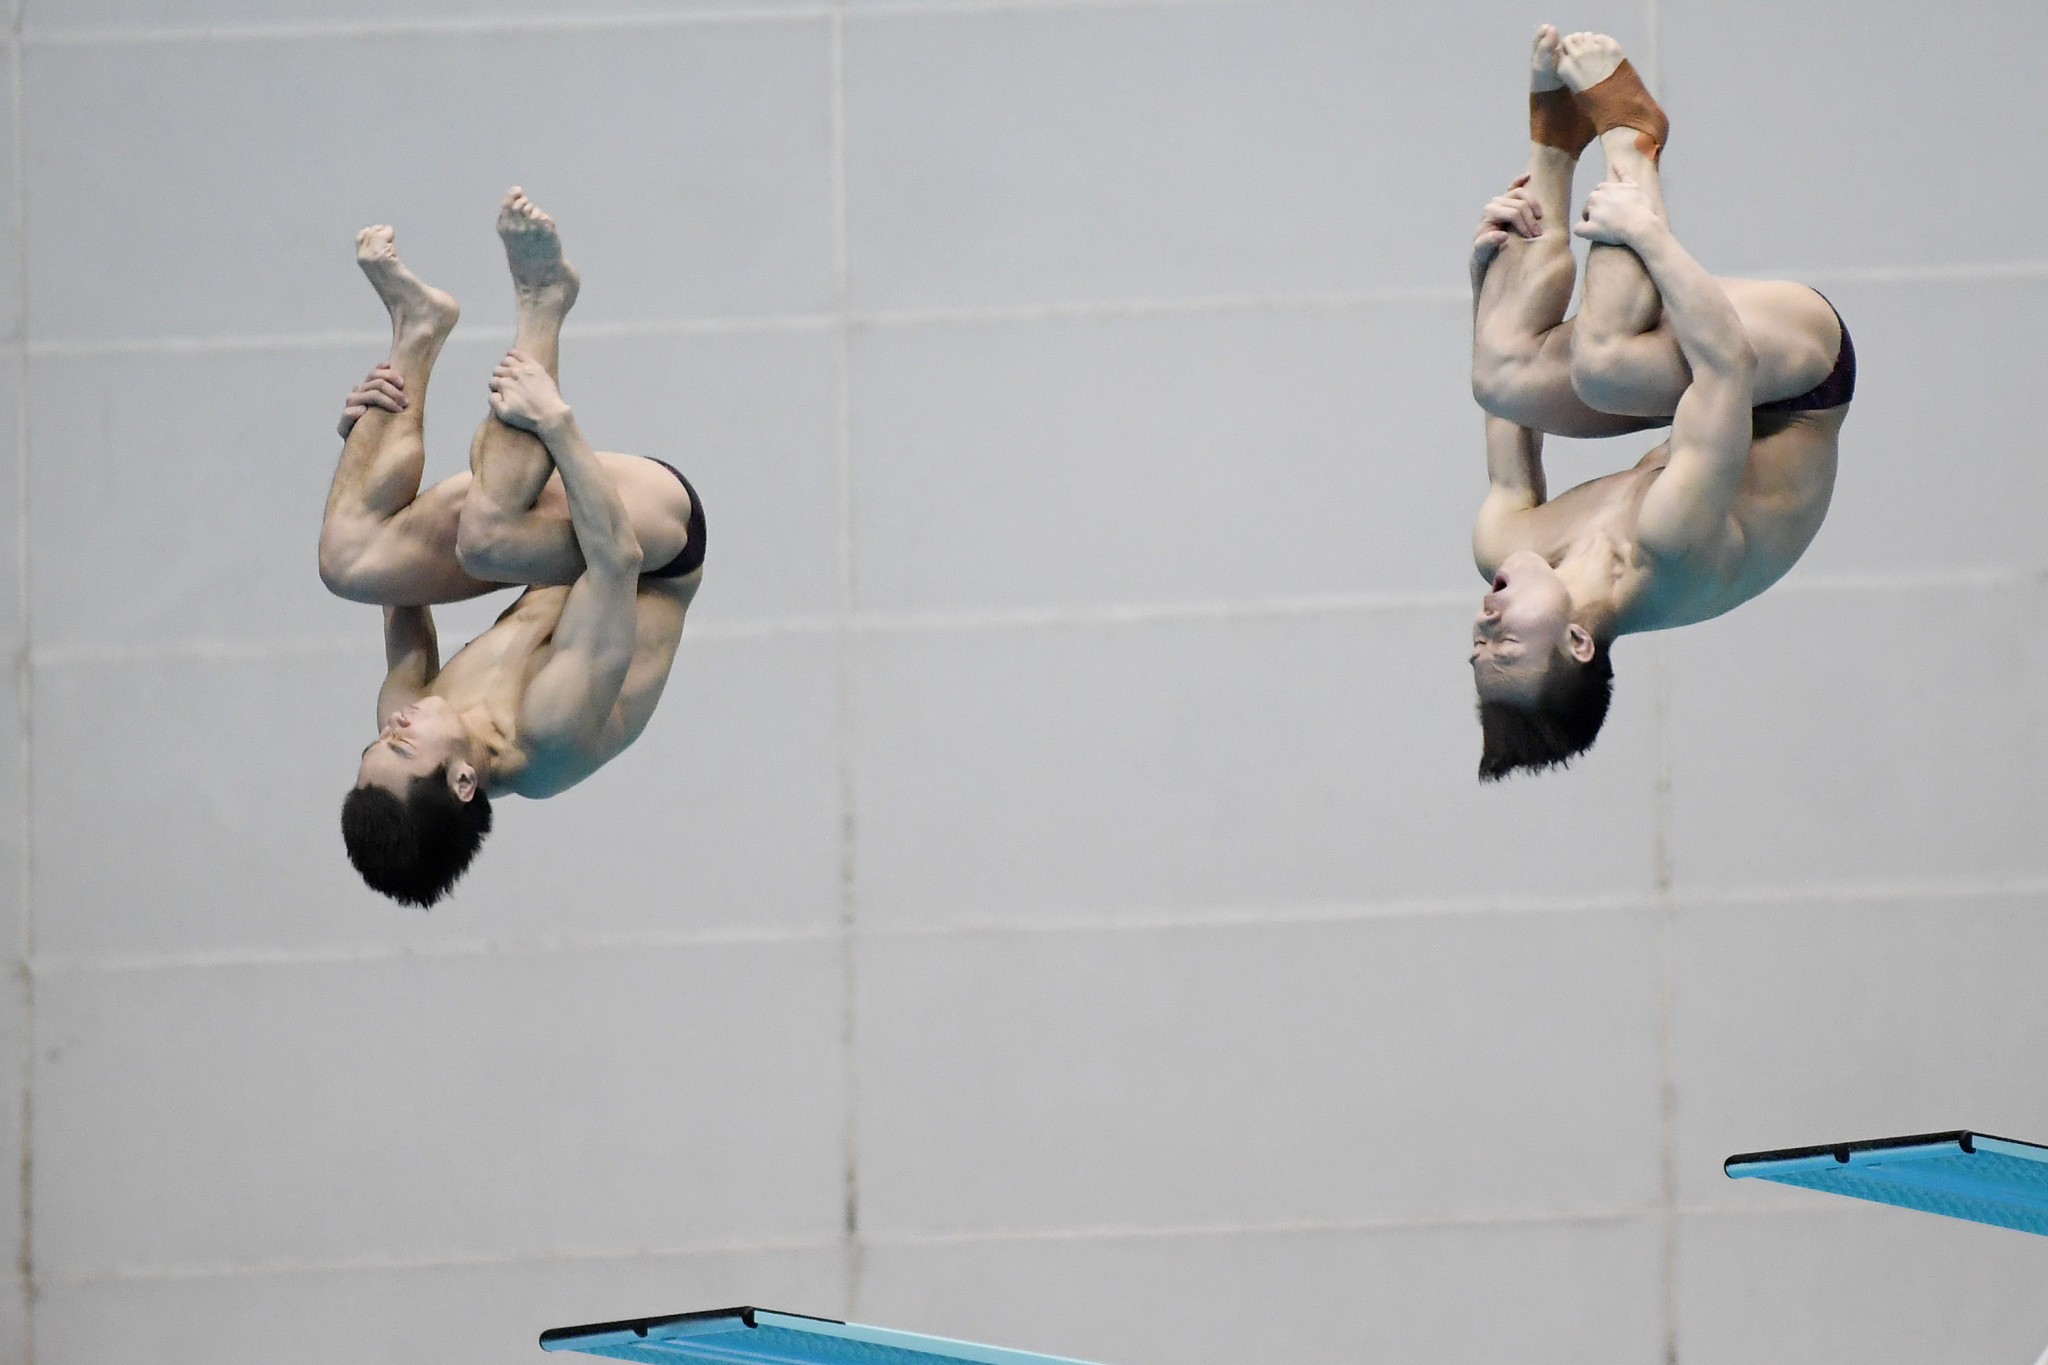 China's Cao Yuan and Xie Siyi were a cut above their opponents in the men's synchronised 3m springboard event ©Getty Images